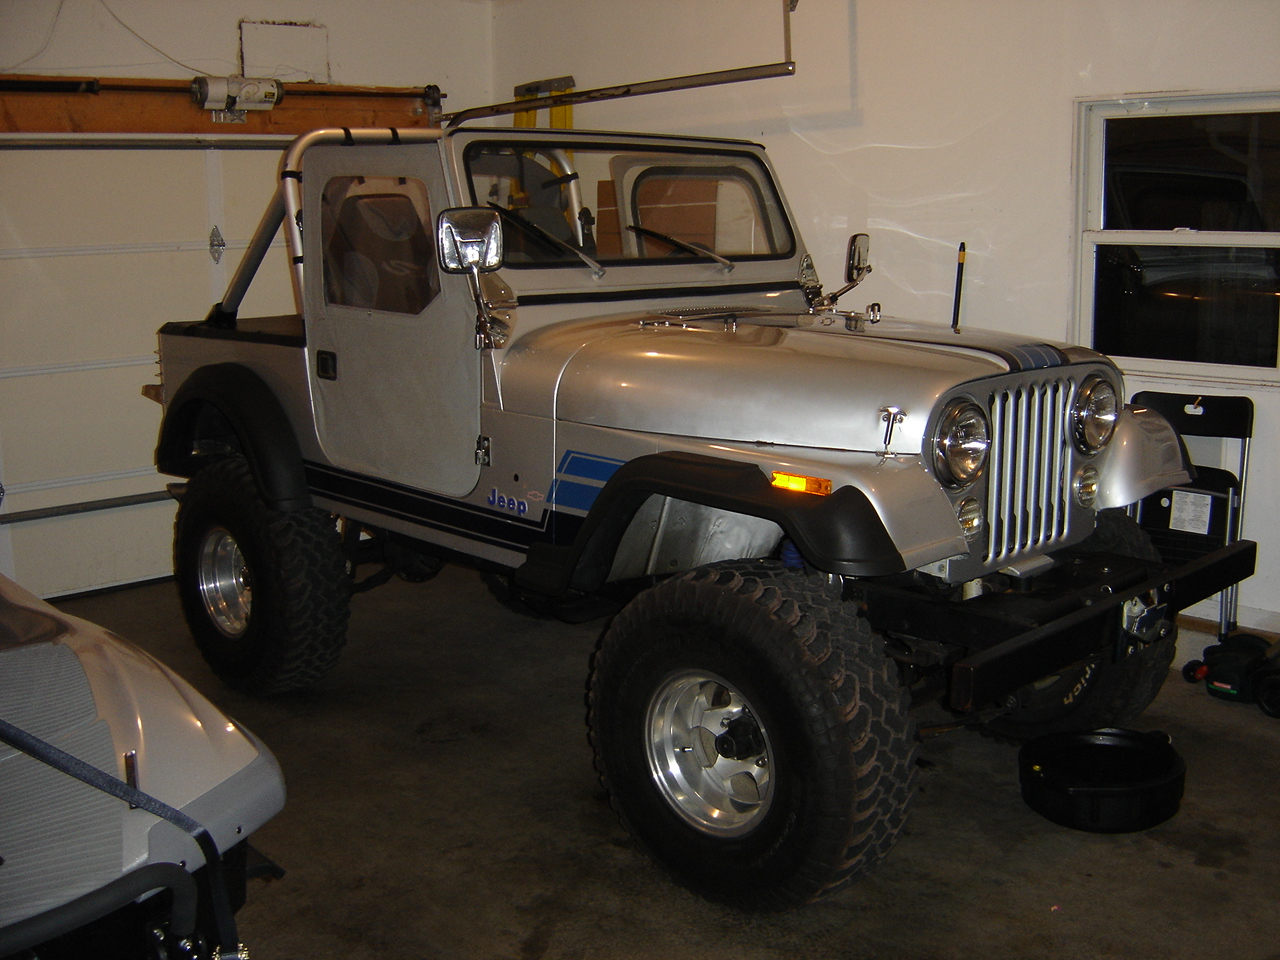 81 Jeep CJ-7 FOR SALE